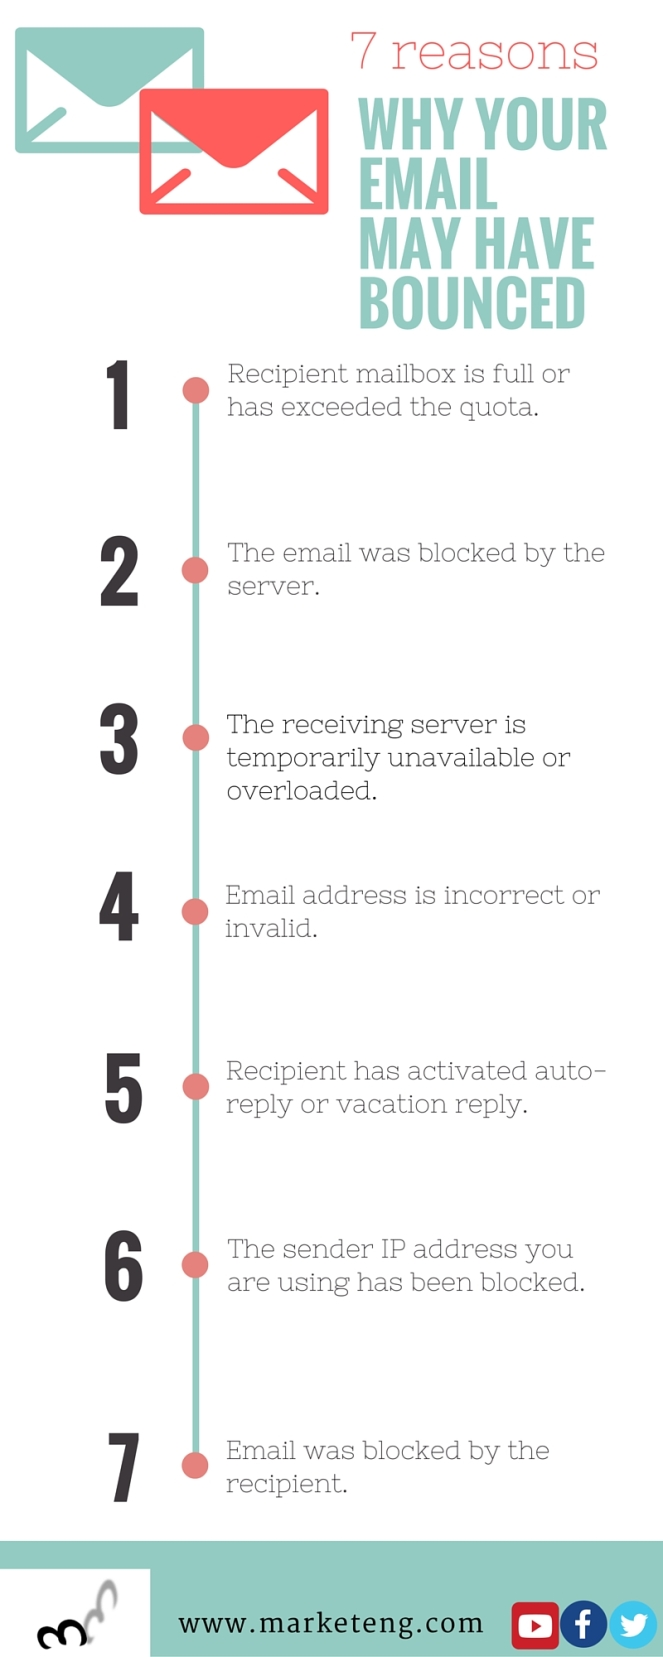 infographic_email_bounce.jpg